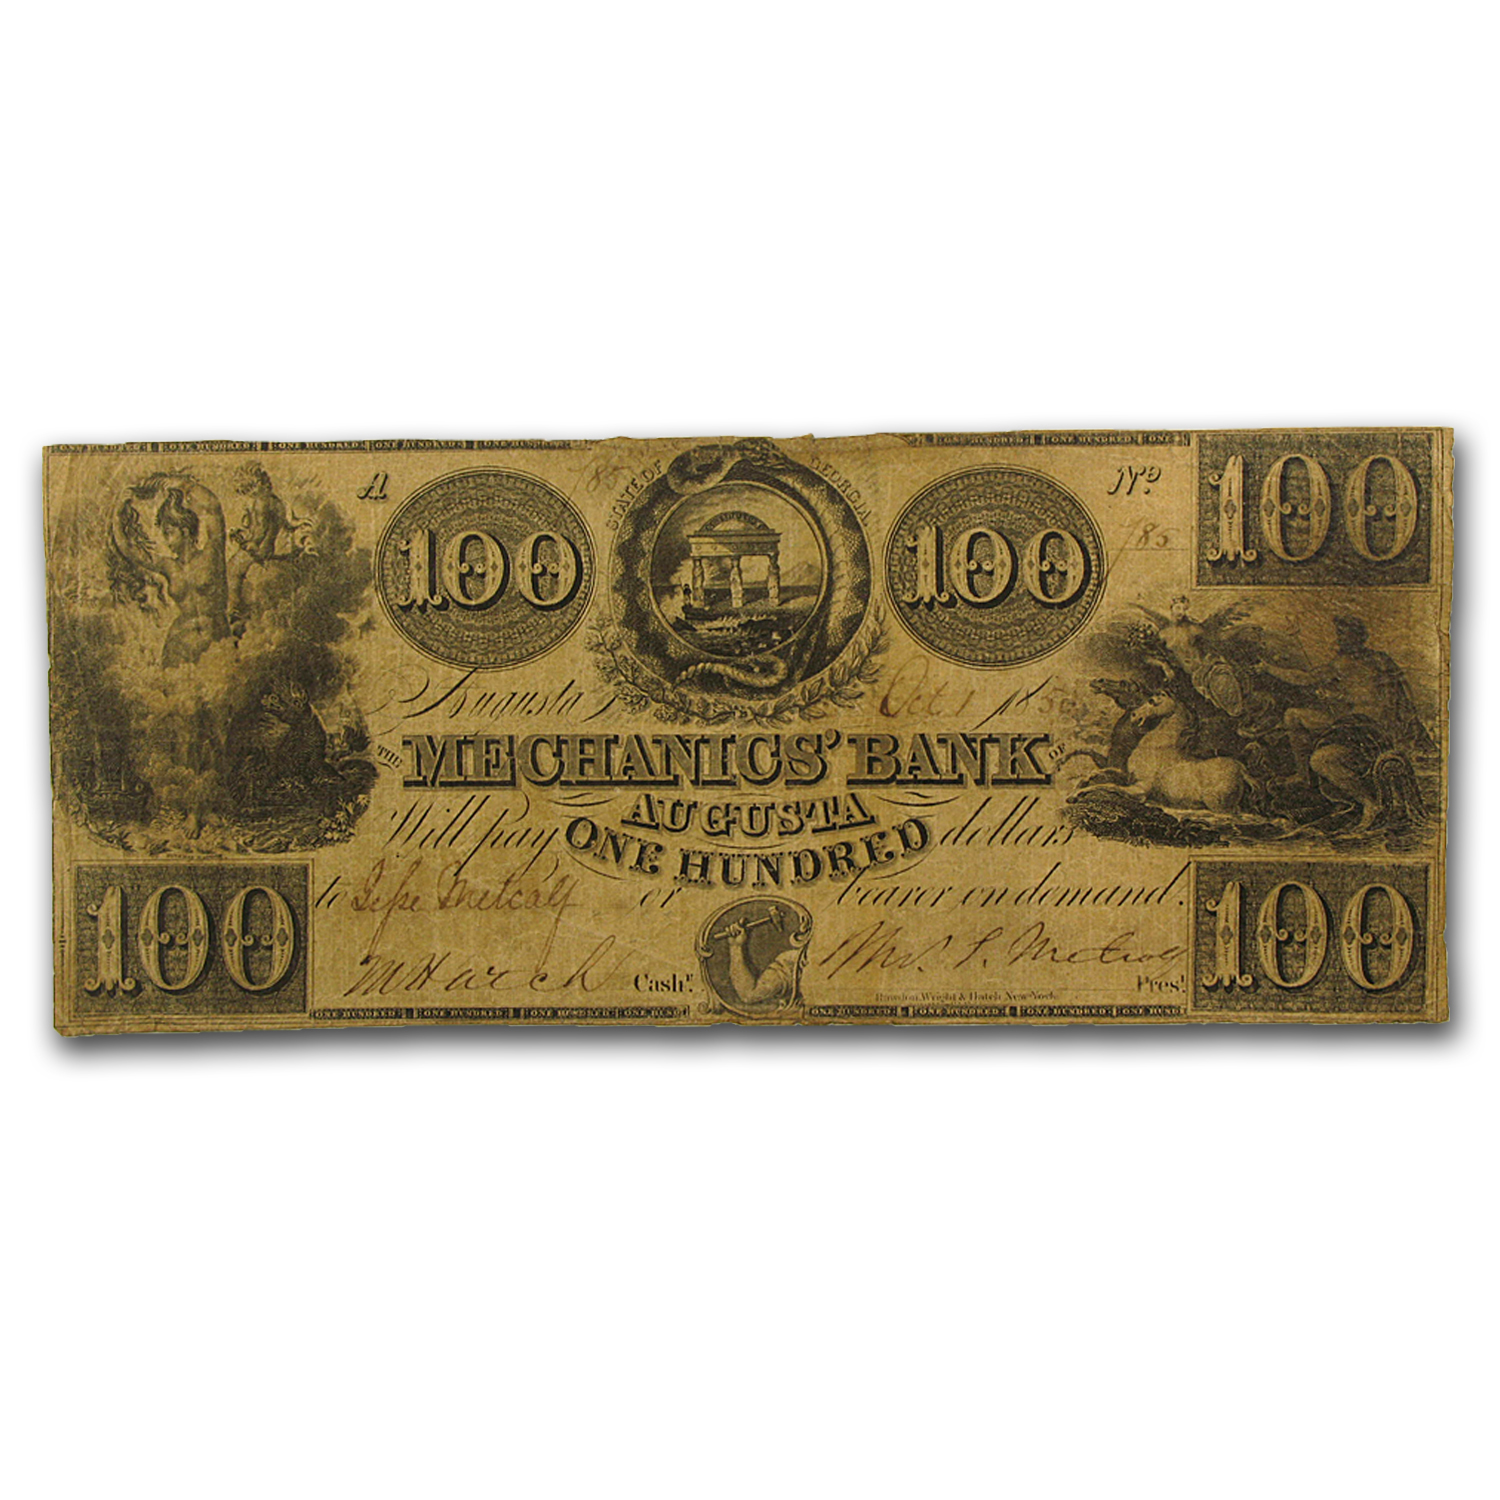 1856 The Mechanics Bank of Augusta, GA $100 Fine